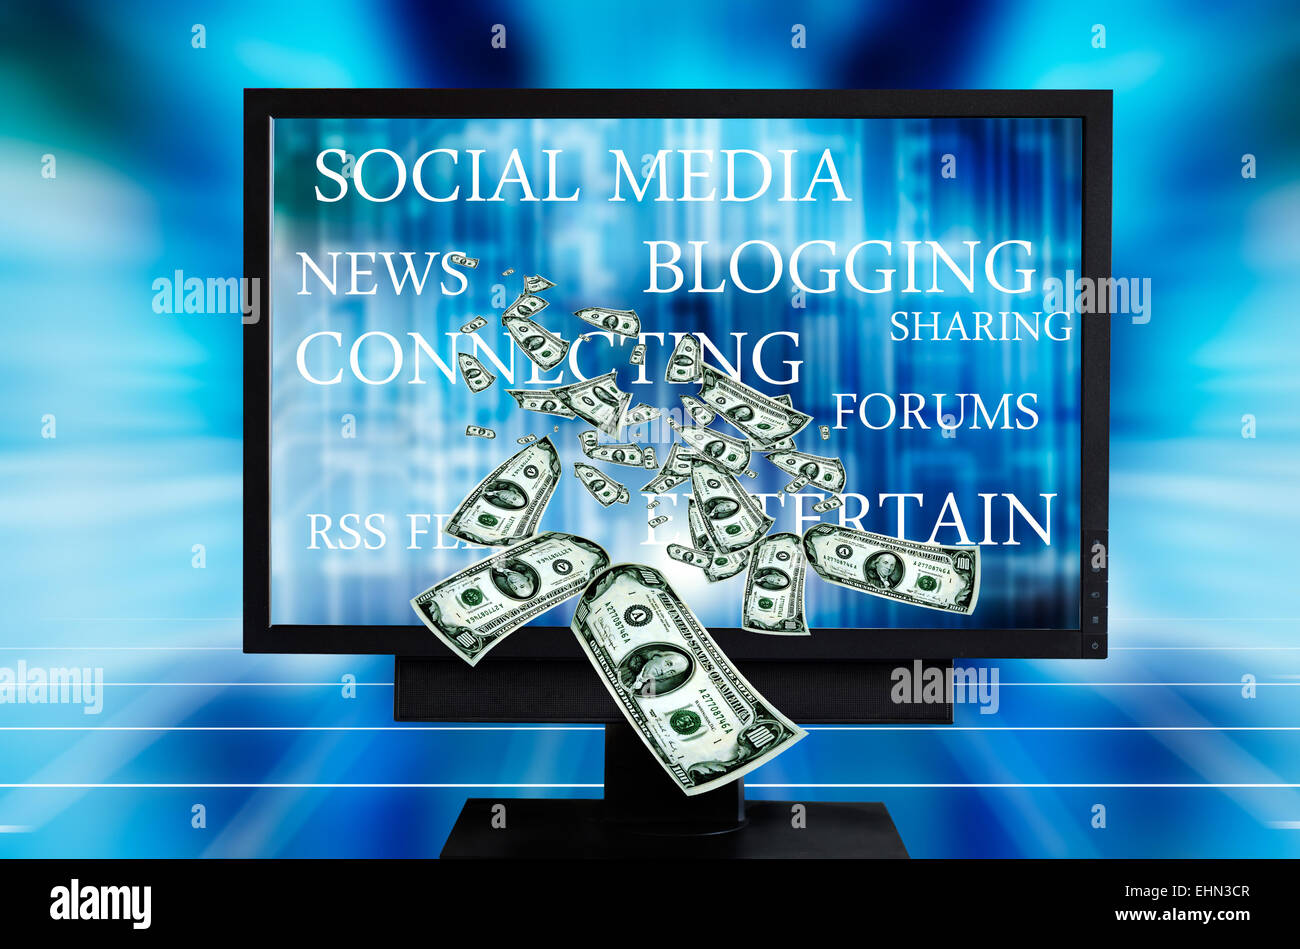 earning with social media concept - Stock Image